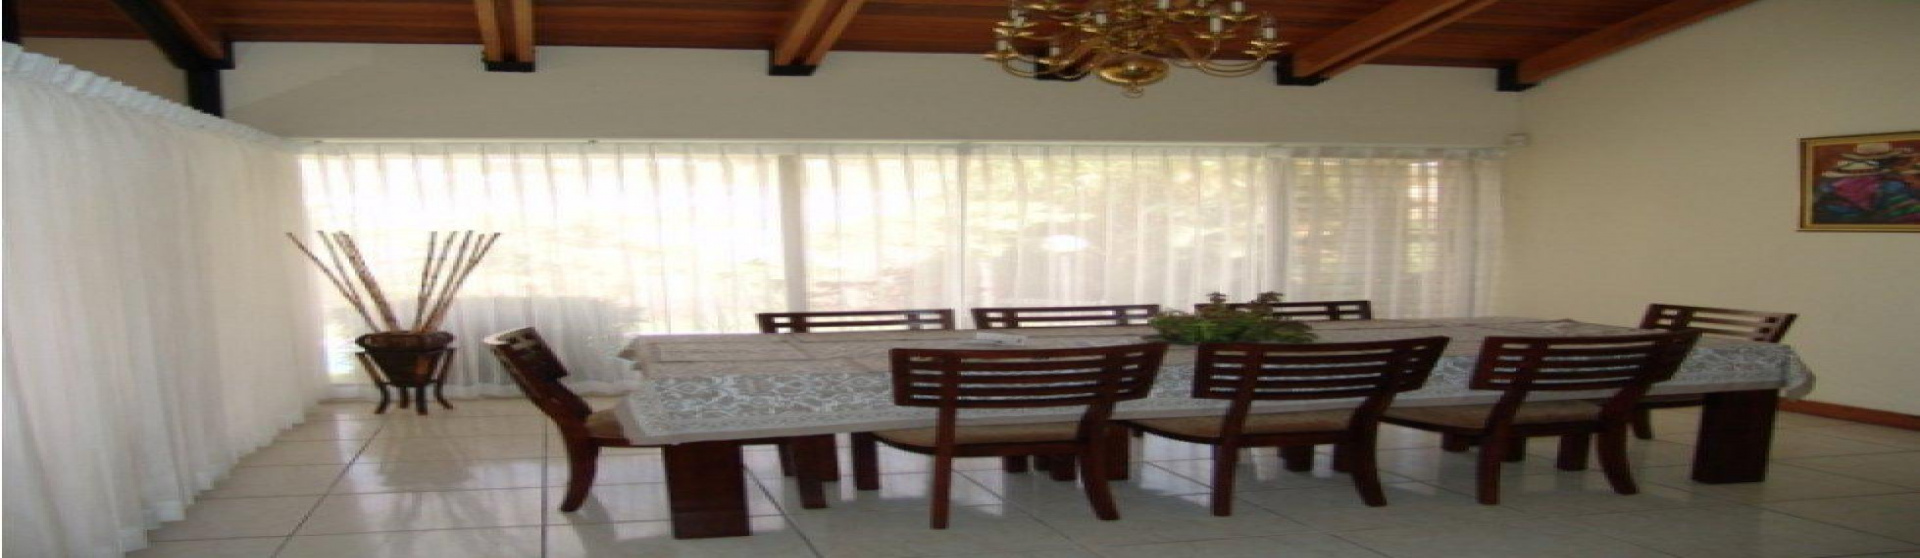 Escazú, Costa Rica, 4 Bedrooms Bedrooms, ,4 BathroomsBathrooms,Villa,For Sale,Escazú, Costa Rica,18063